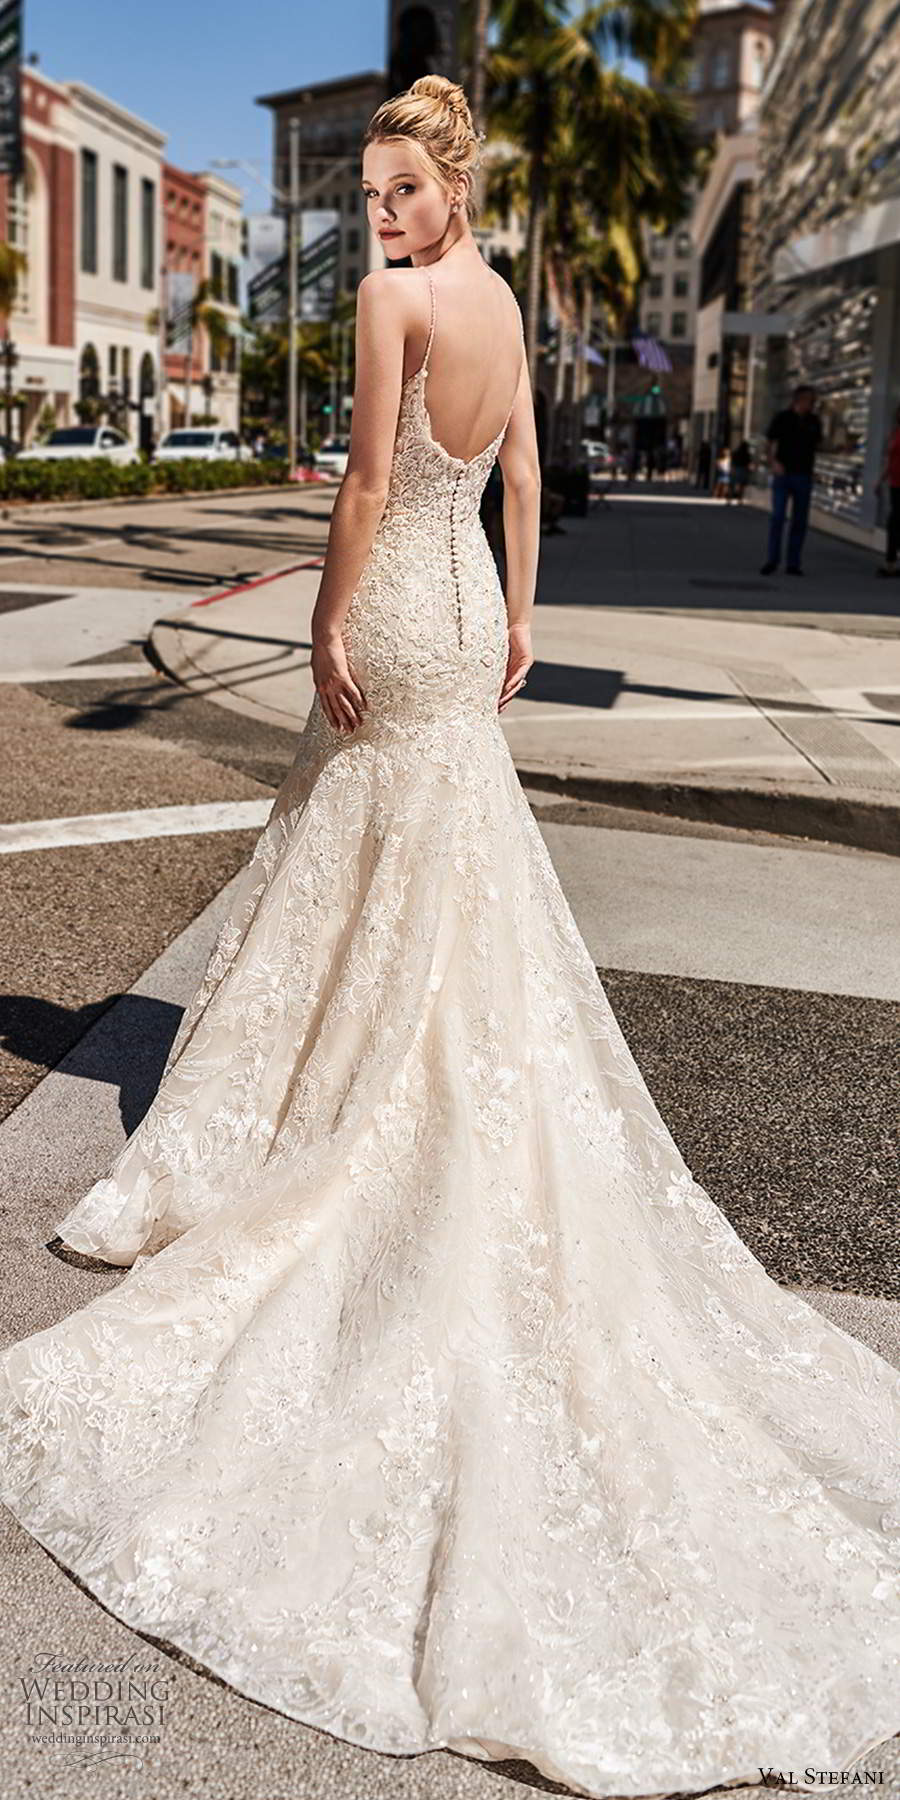 val stefani spring 2020 bridal sleeveless thin straps v neckline fully embellished lace fit flare trumpet a line wedding dress scoop back chapel train (4) bv